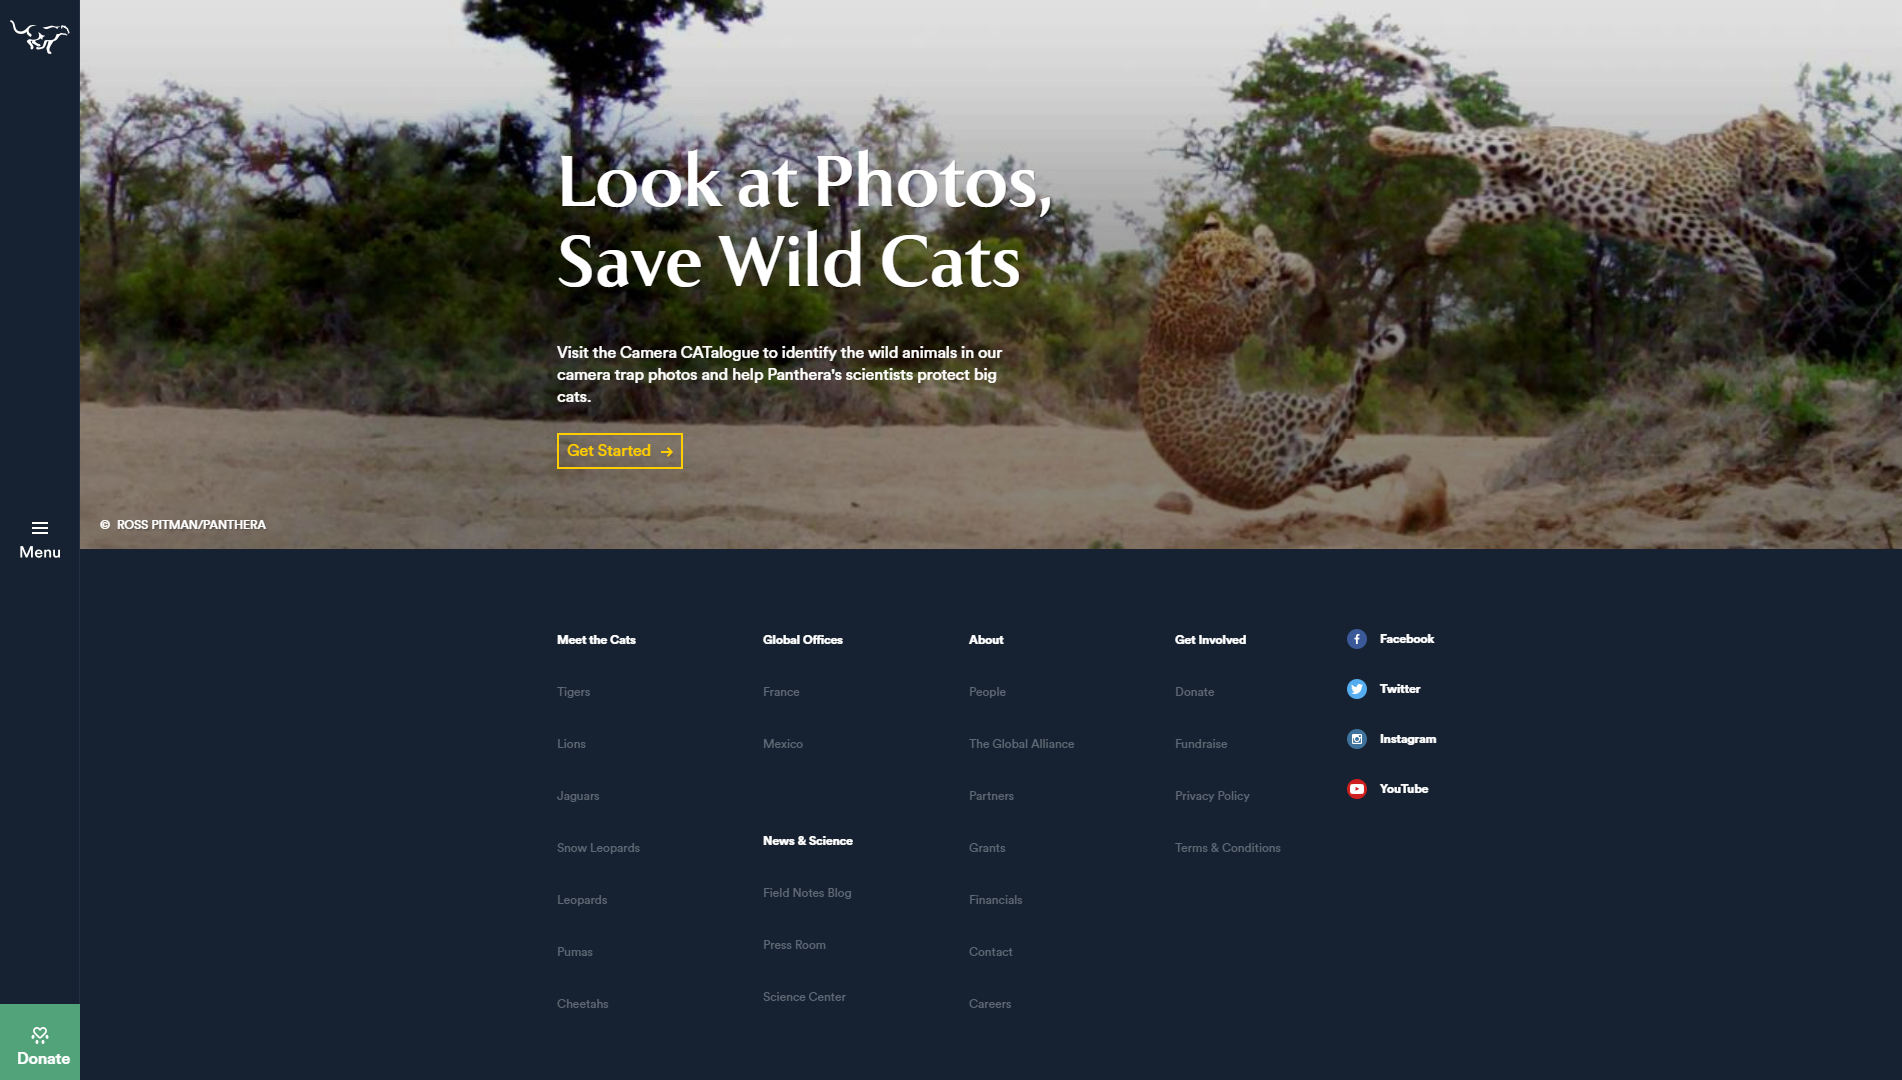 The Panthera homepage.